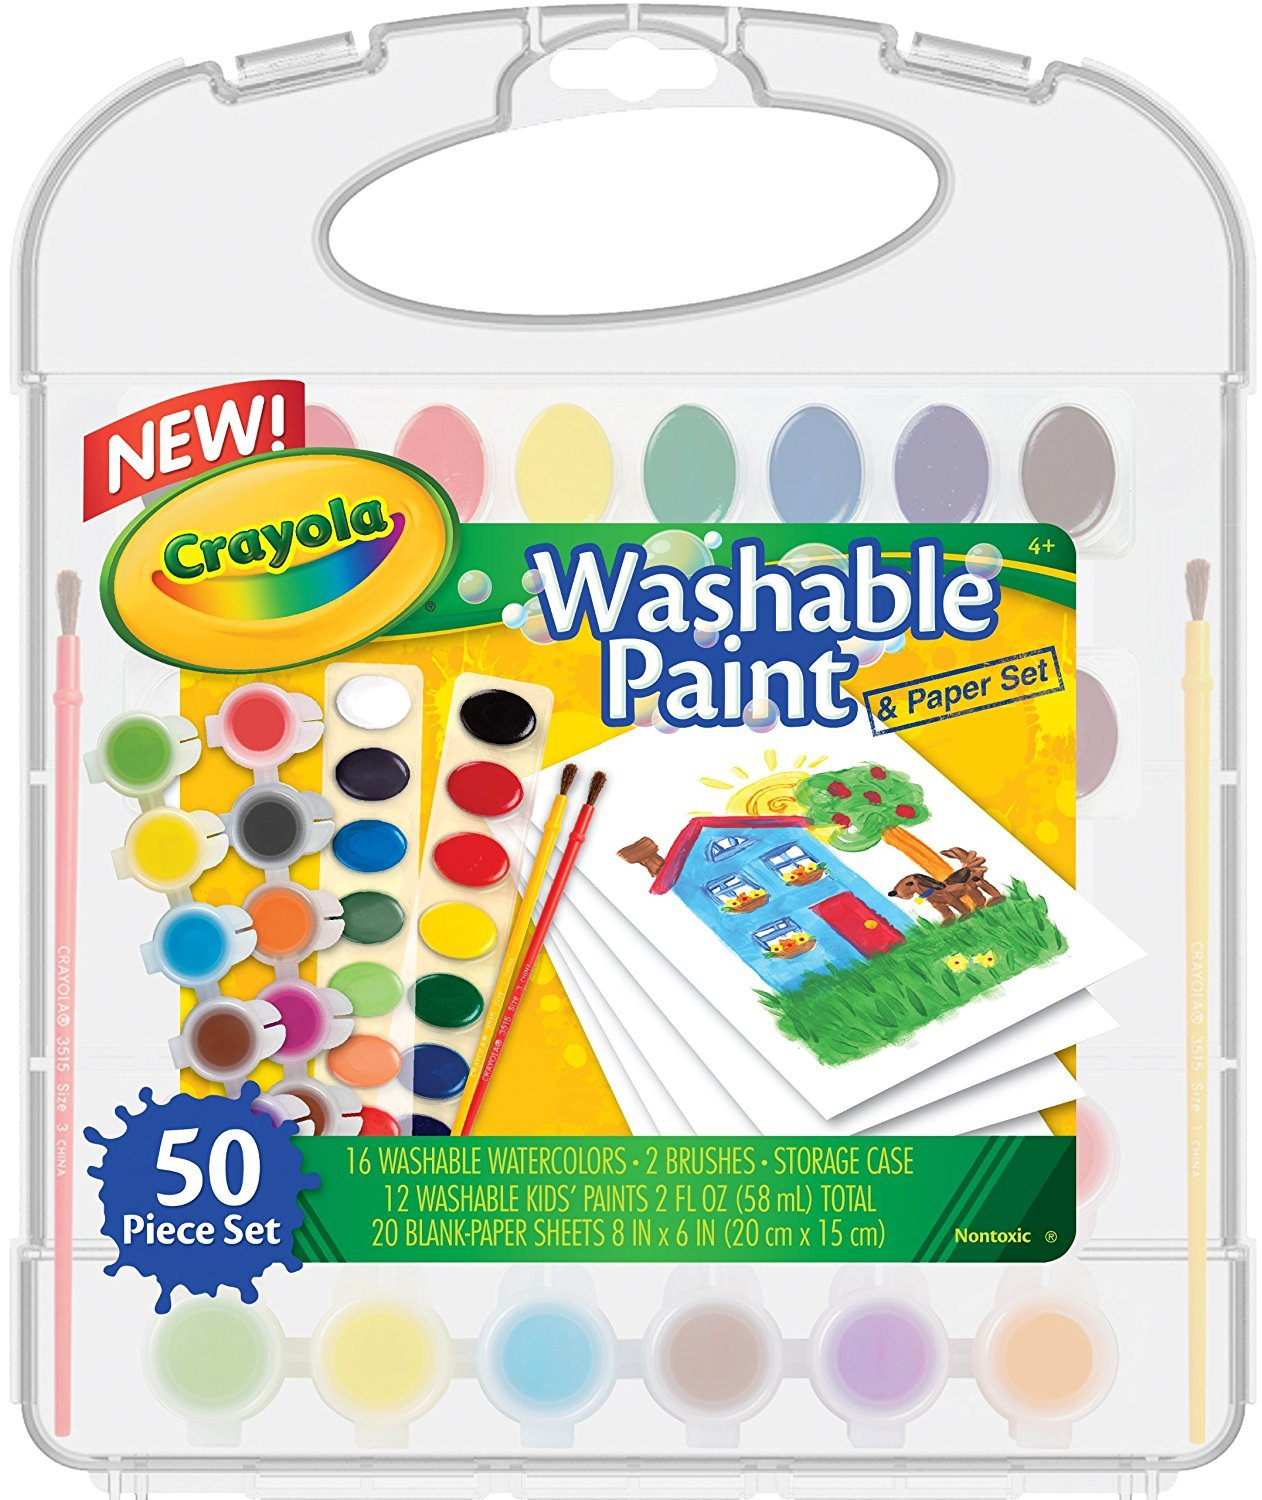 Crayola Washable Paint & Paper Set, 50 Pieces Art Tools for Kids 4 & Up, Washable Watercolors, Washable Kids' Paint, Brushes & Paper Sheets In Convenient Travel Case, Perfect for The On-The-Go Artist by Crayola